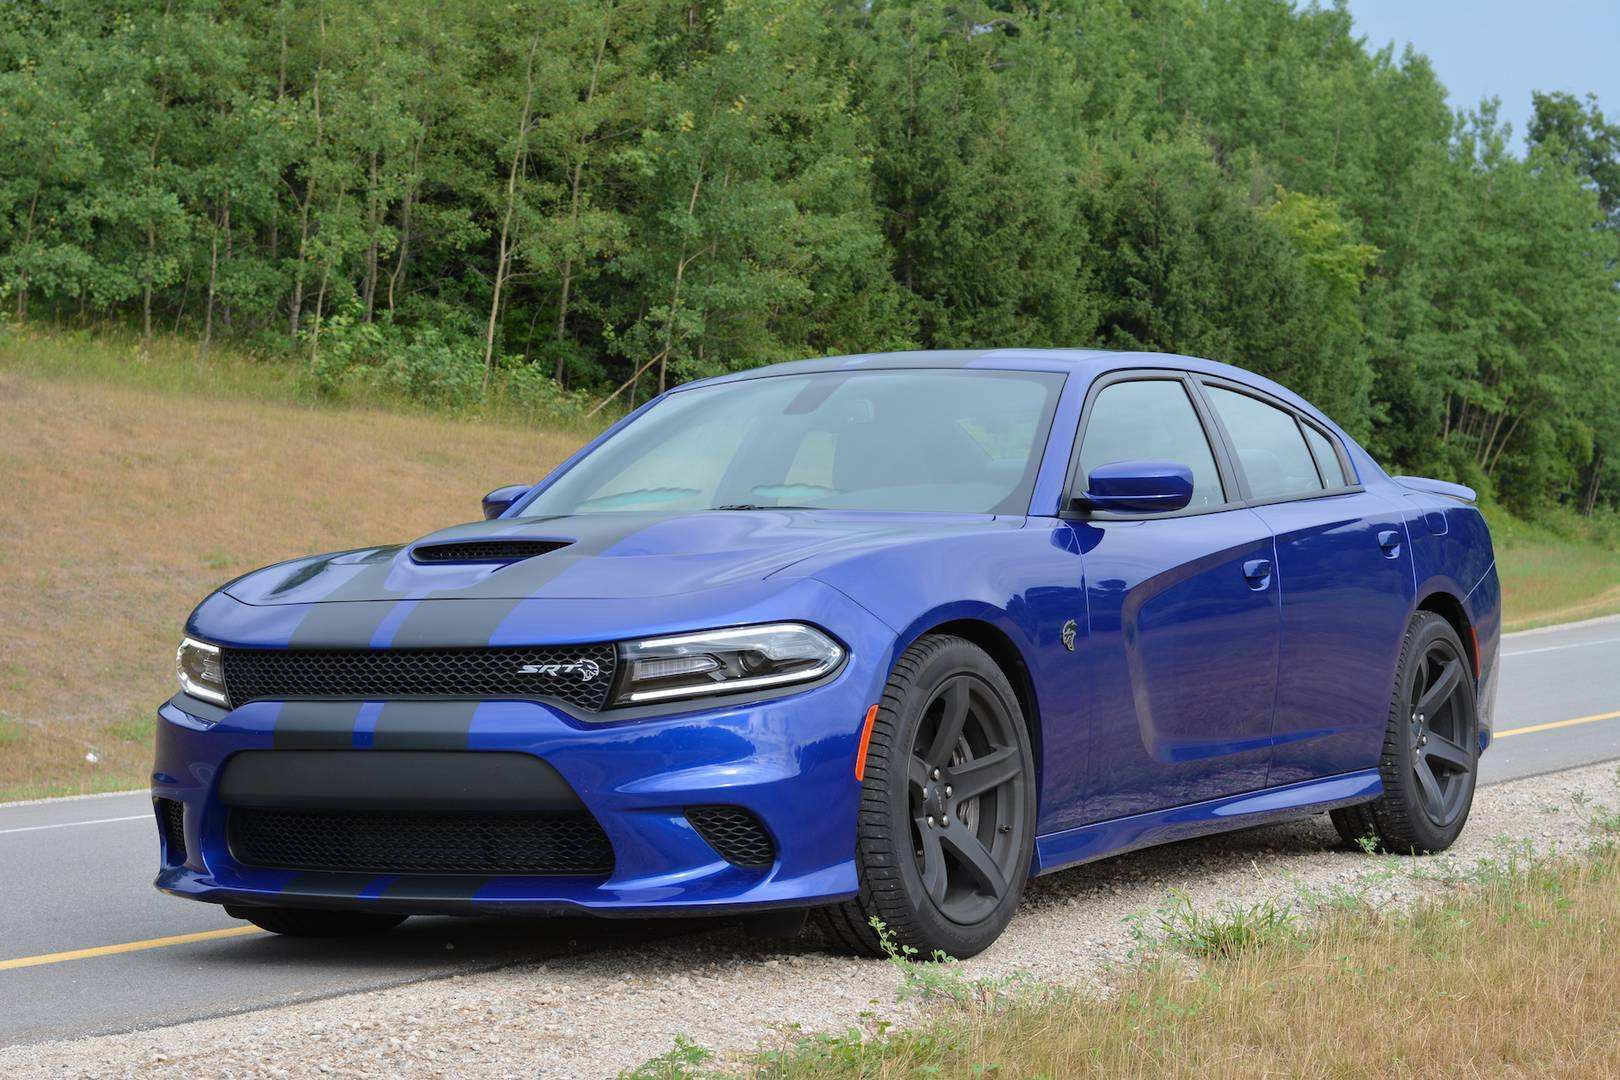 37 A 2019 Dodge Charger Srt8 Hellcat History